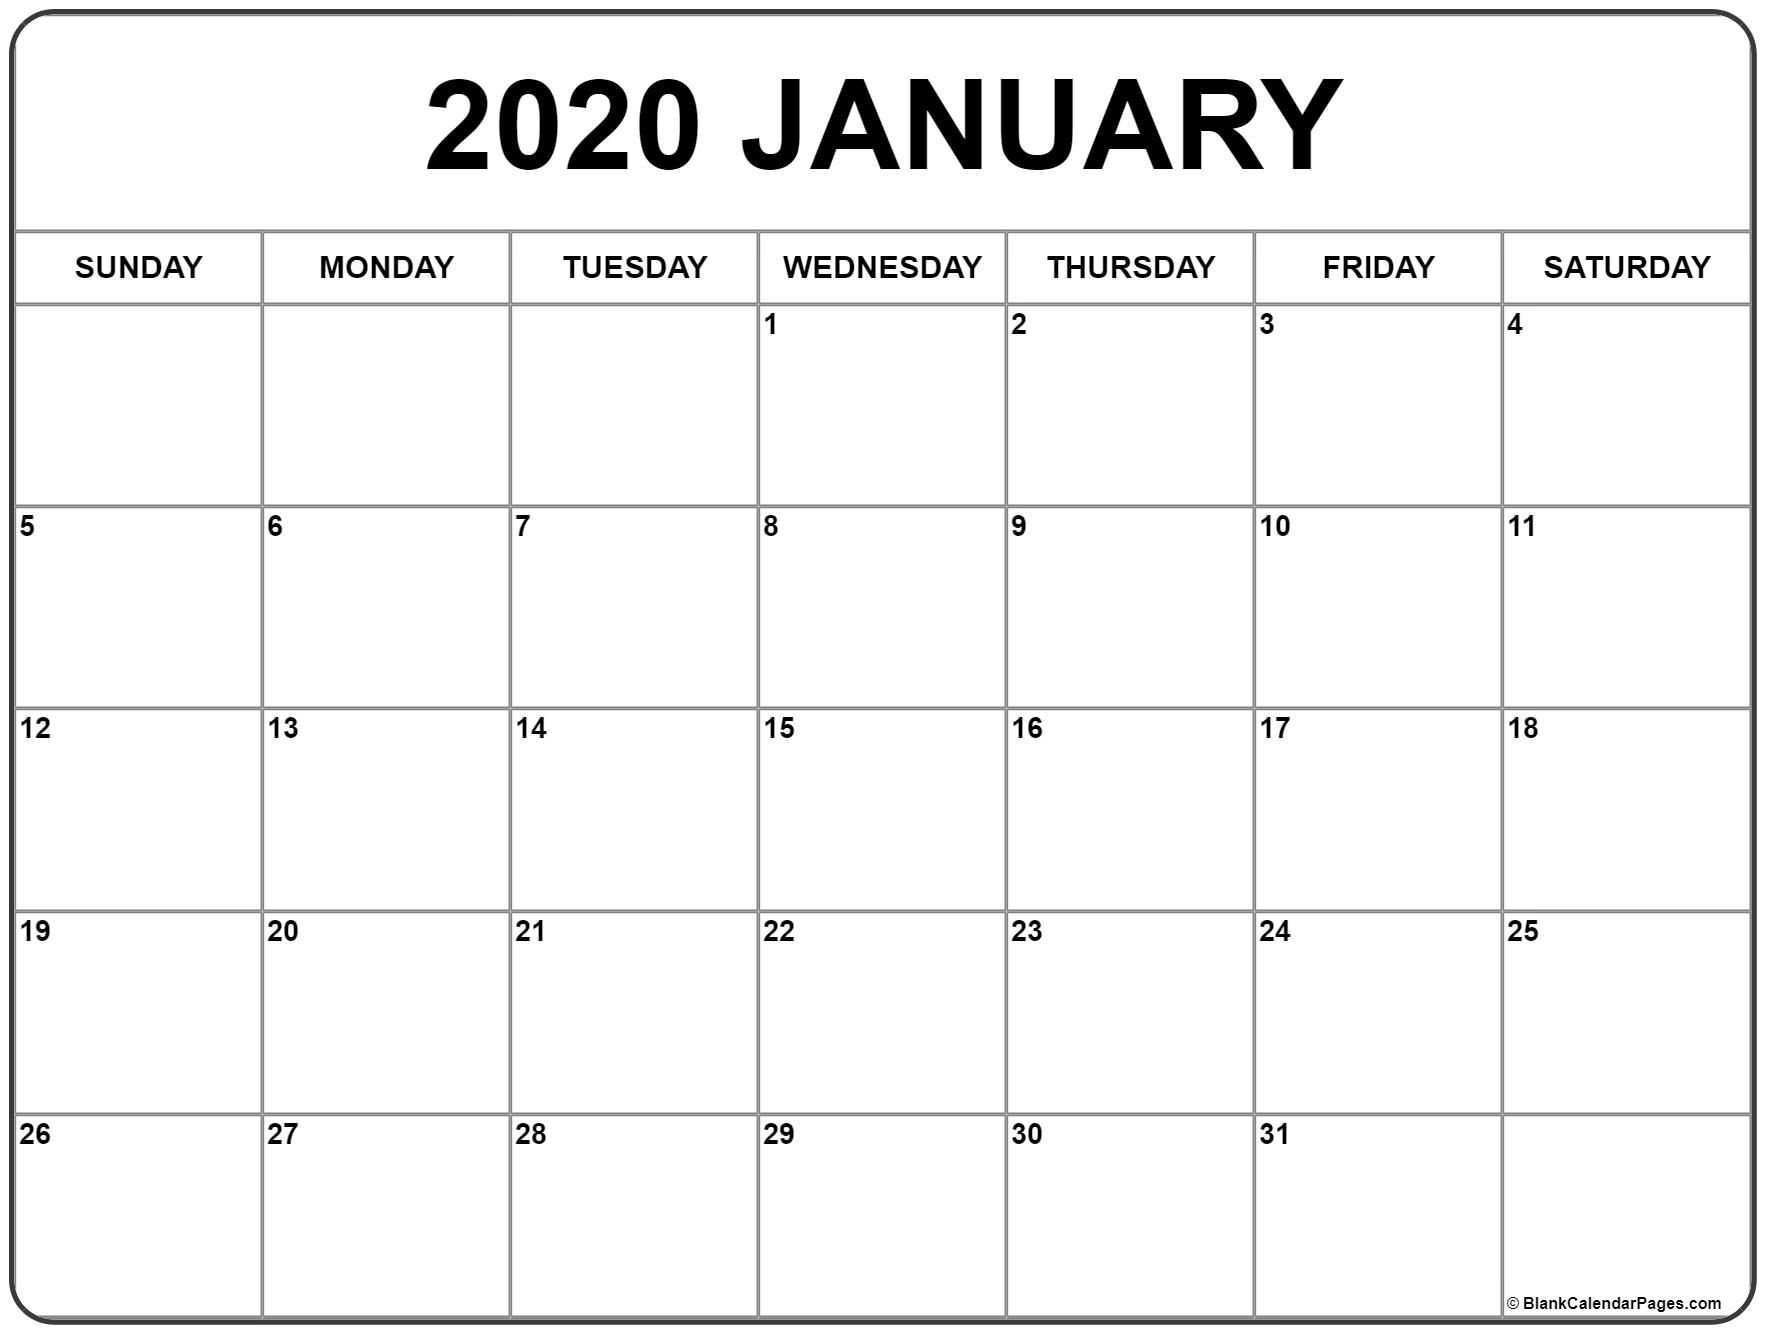 January 2020 Calendar Printable (With Images)   Monthly 8 Week Calendar Doc